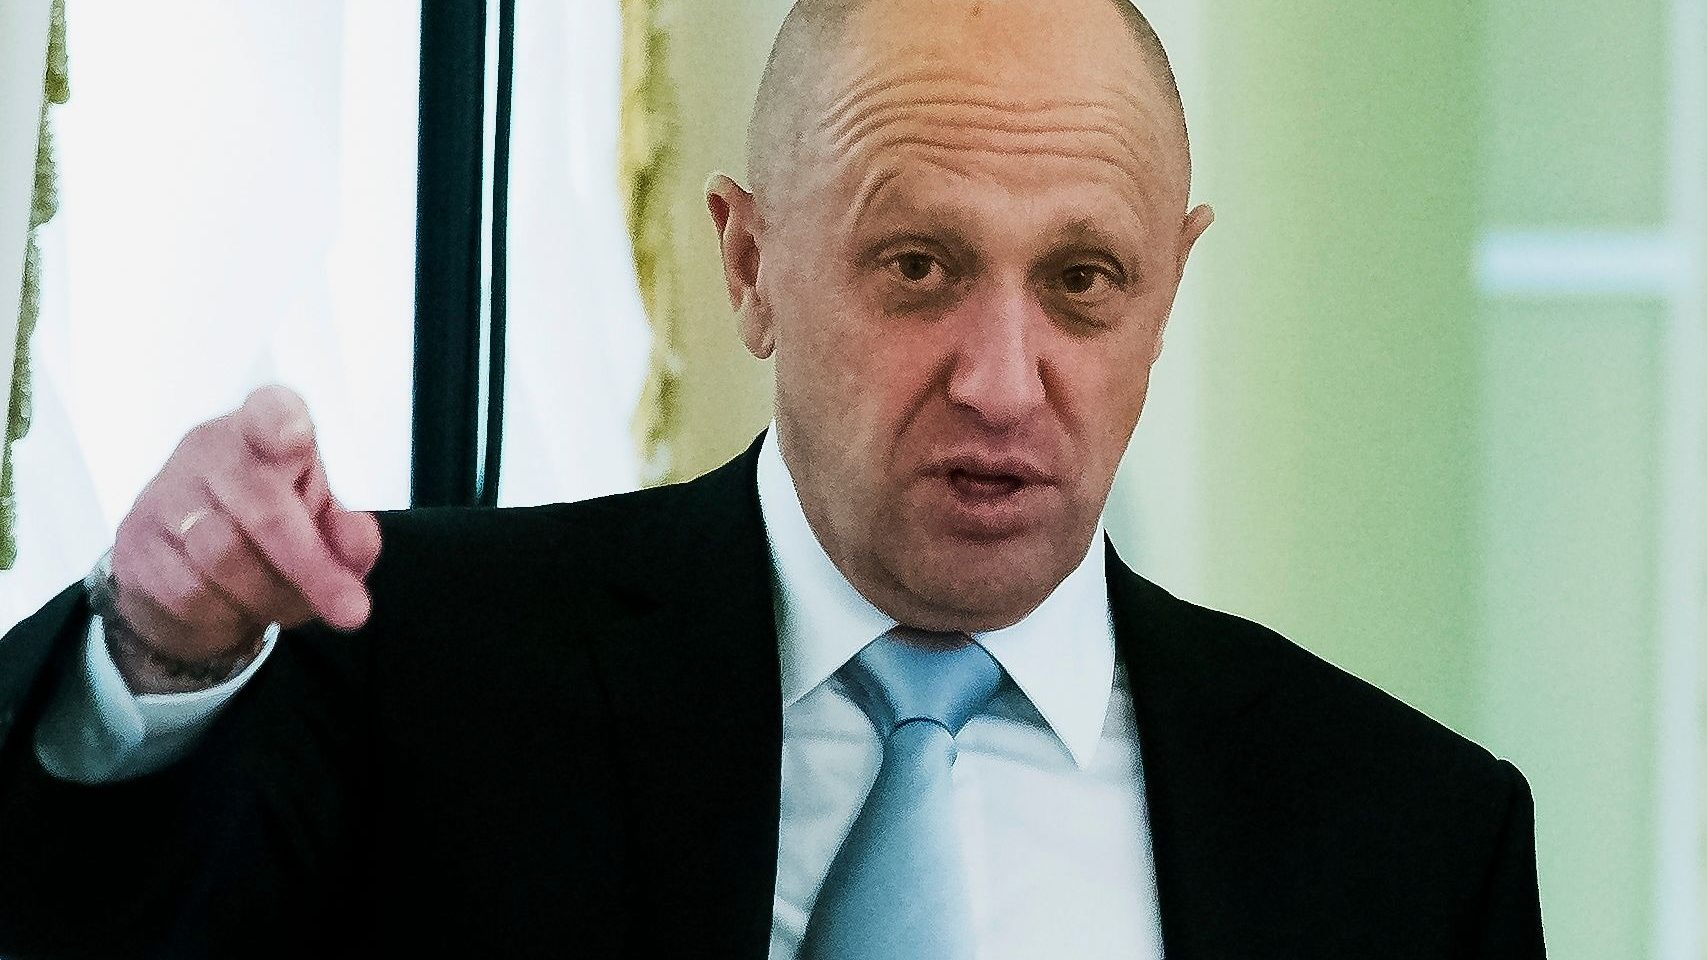 businessman Yevgeny Prigozhin, who controls Concord Management and Consulting LLC. He has ties to Putin.